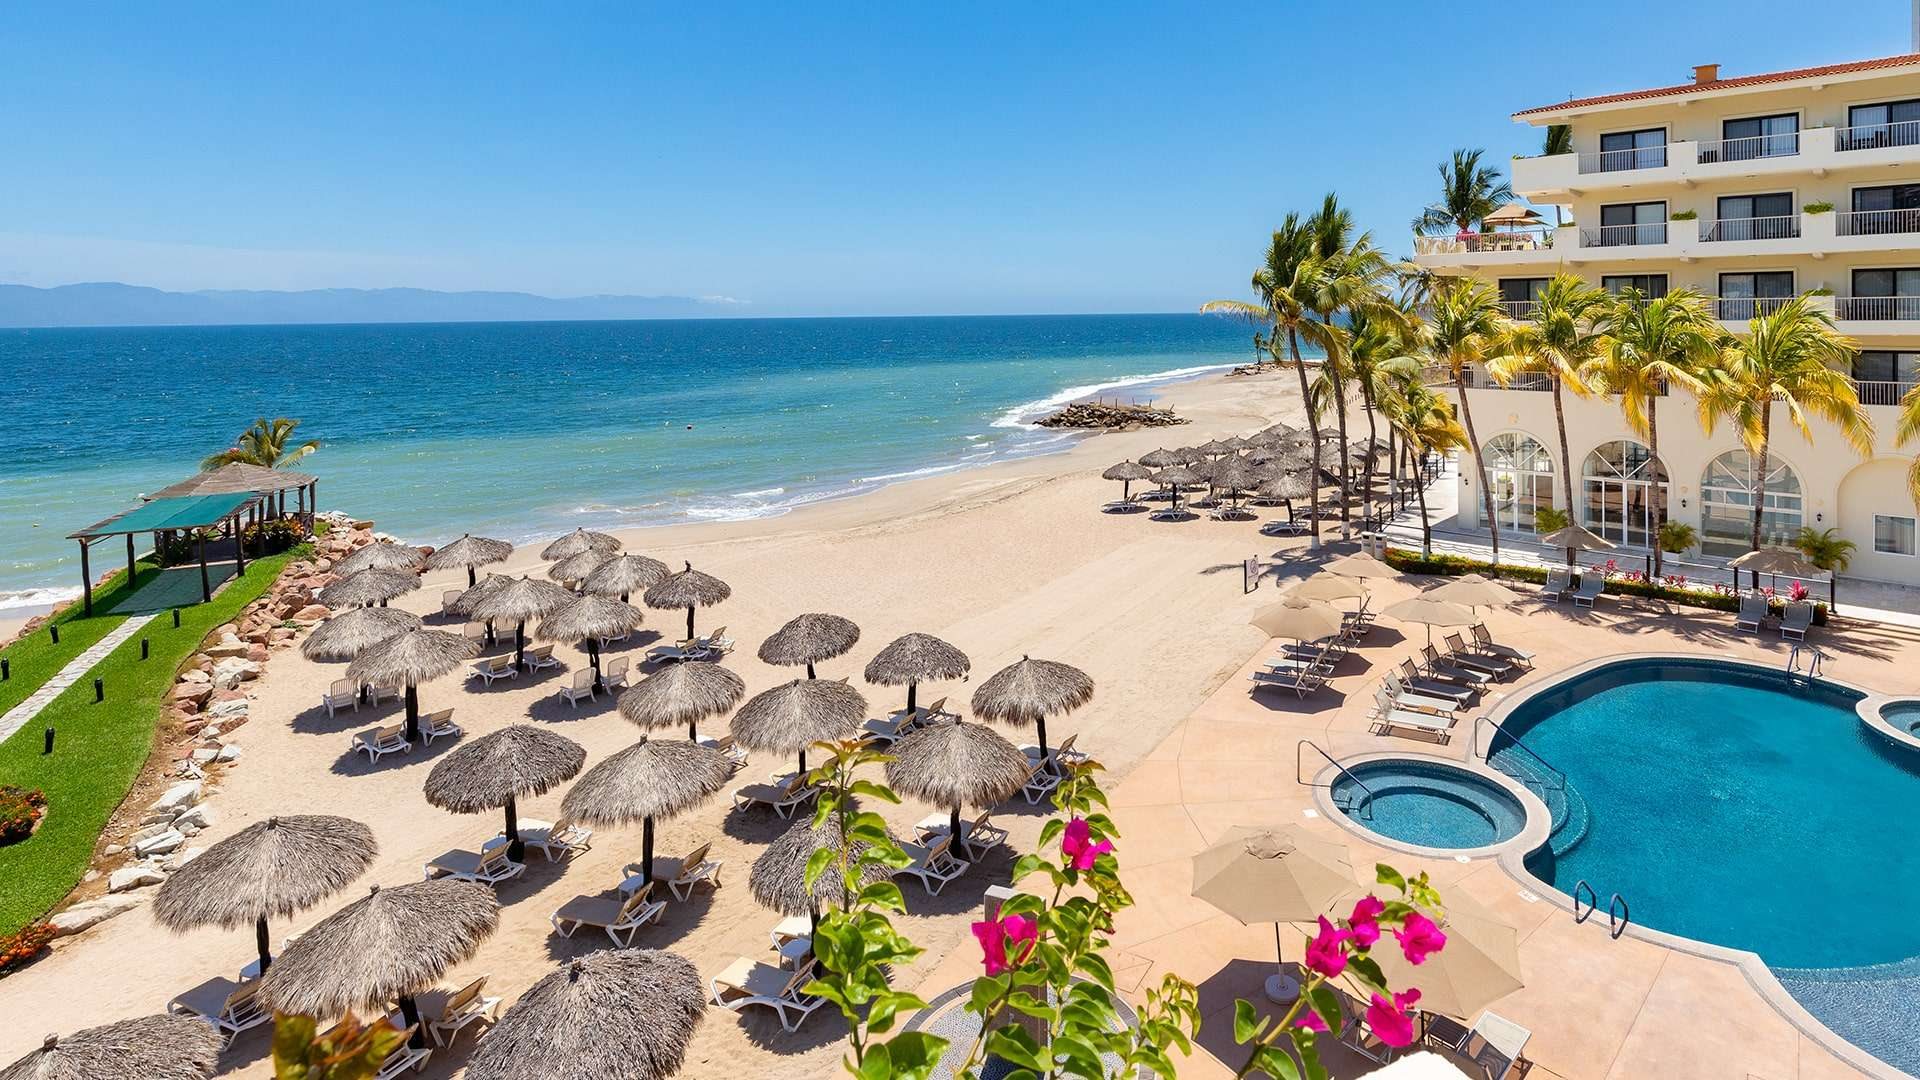 Villa Del Palmar Vallarta Wins Tripadvisor Travelers Choice Awards Min